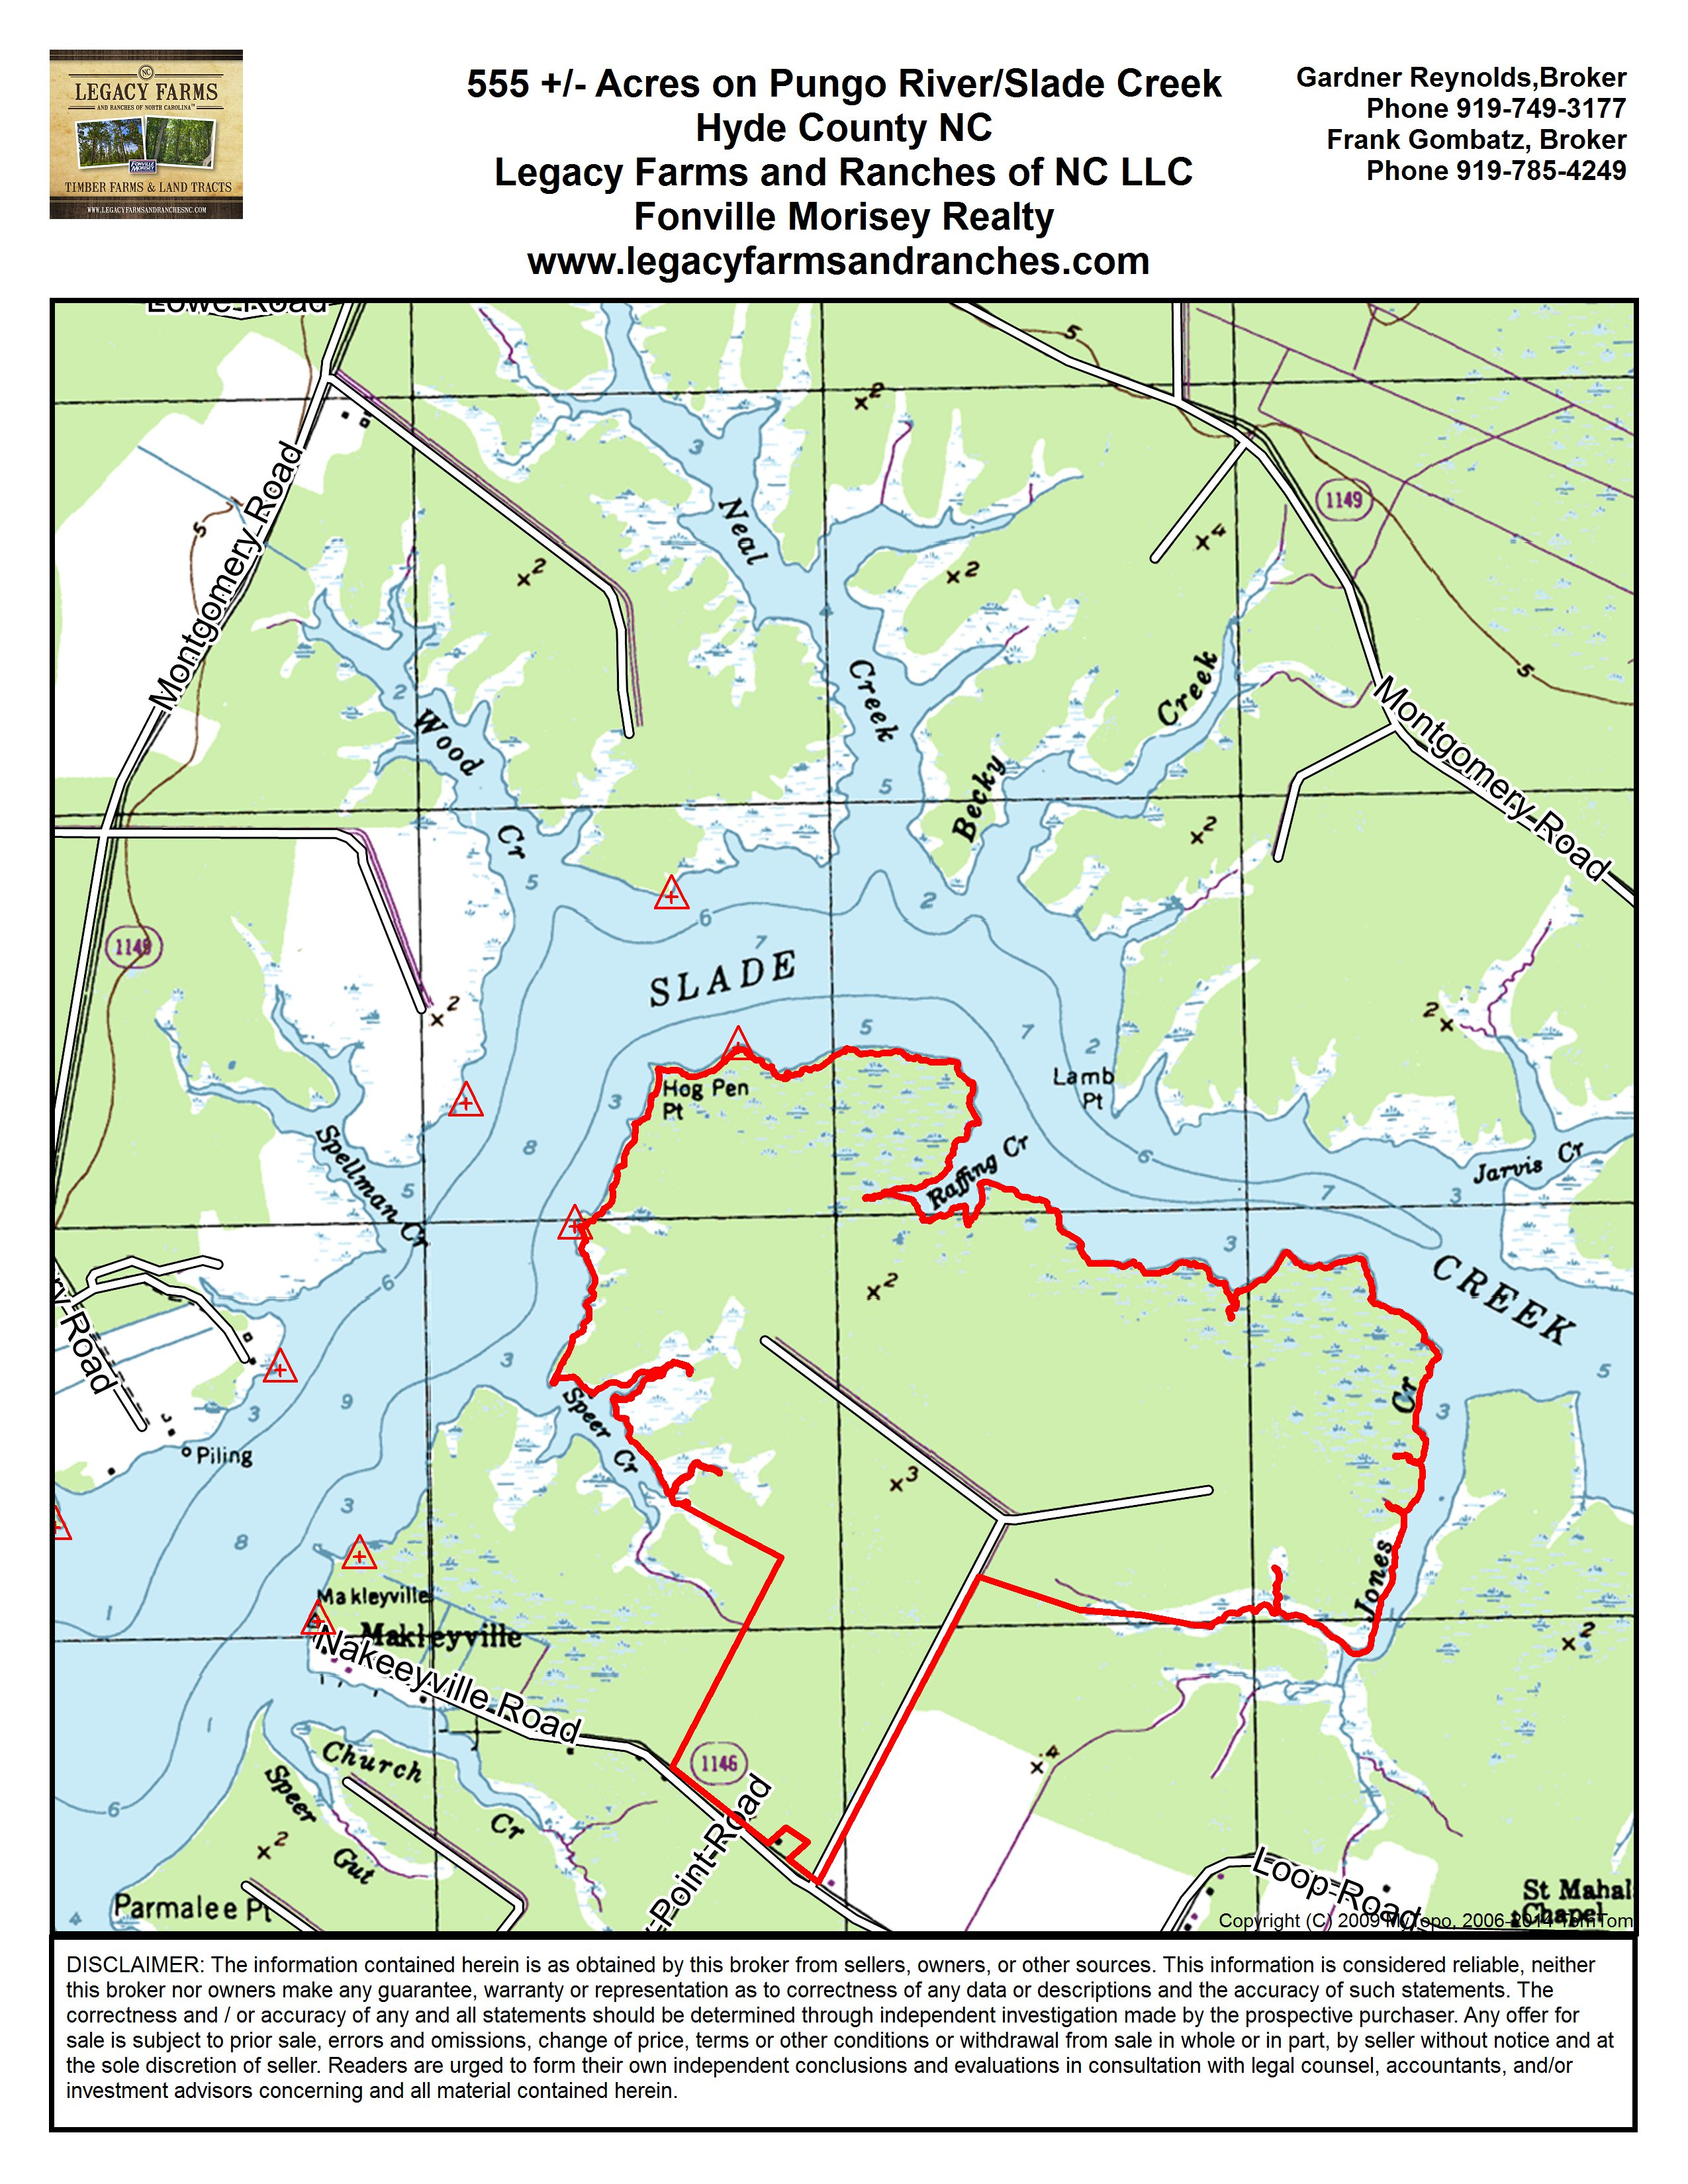 555 Acres On Slade Creek Pungo River Near Belhaven In Hyde County